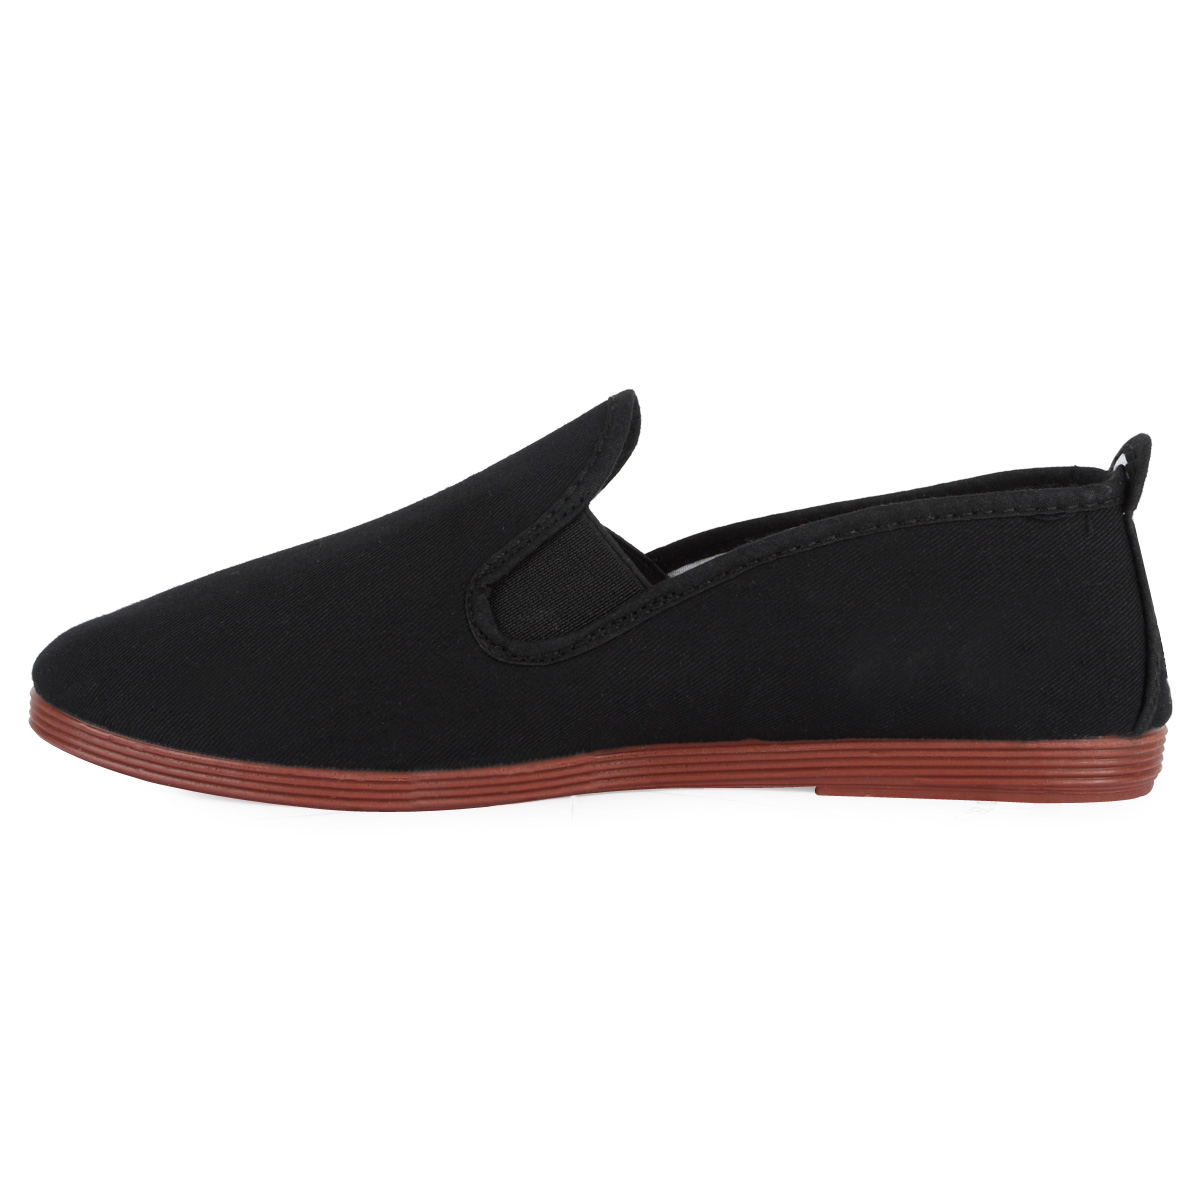 WOMENS BLACK PLAIN LADIES CASUAL SHOES CLASSIC FLAT PUMPS ...